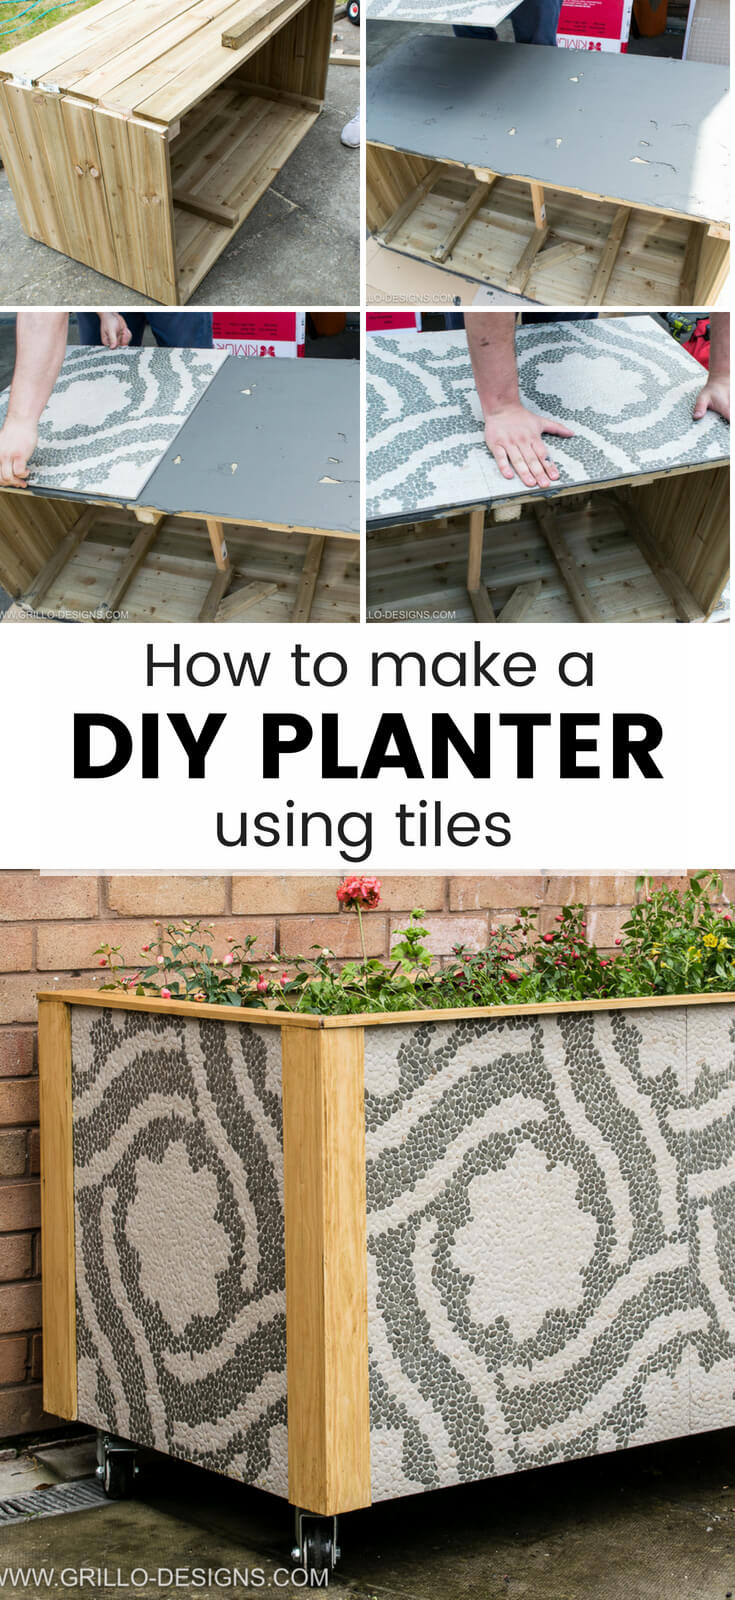 A 10 step approach to building a DIY trough planter from outdoor tiles. Perfect if you are looking to add a little glamour to your garden or porch this summer!